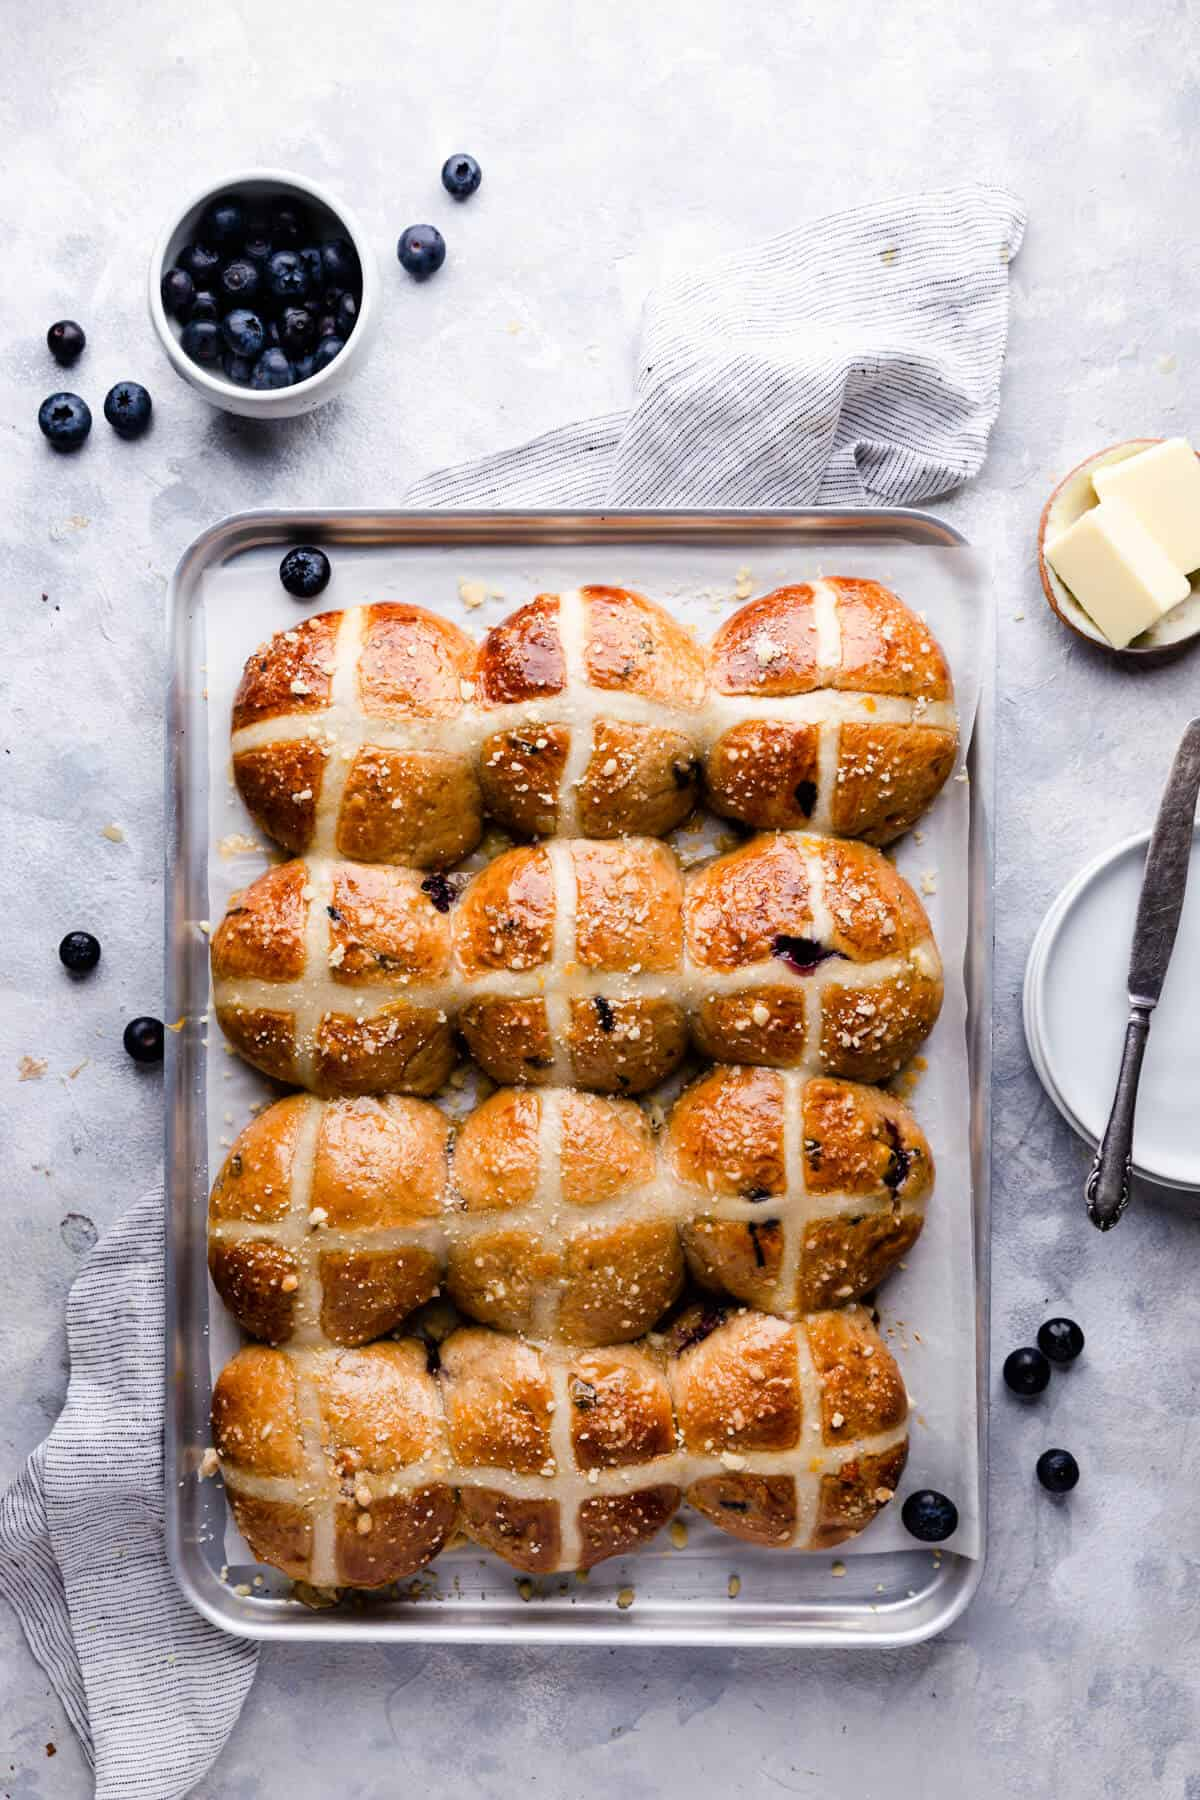 top view at a baking tray with hot cross buns